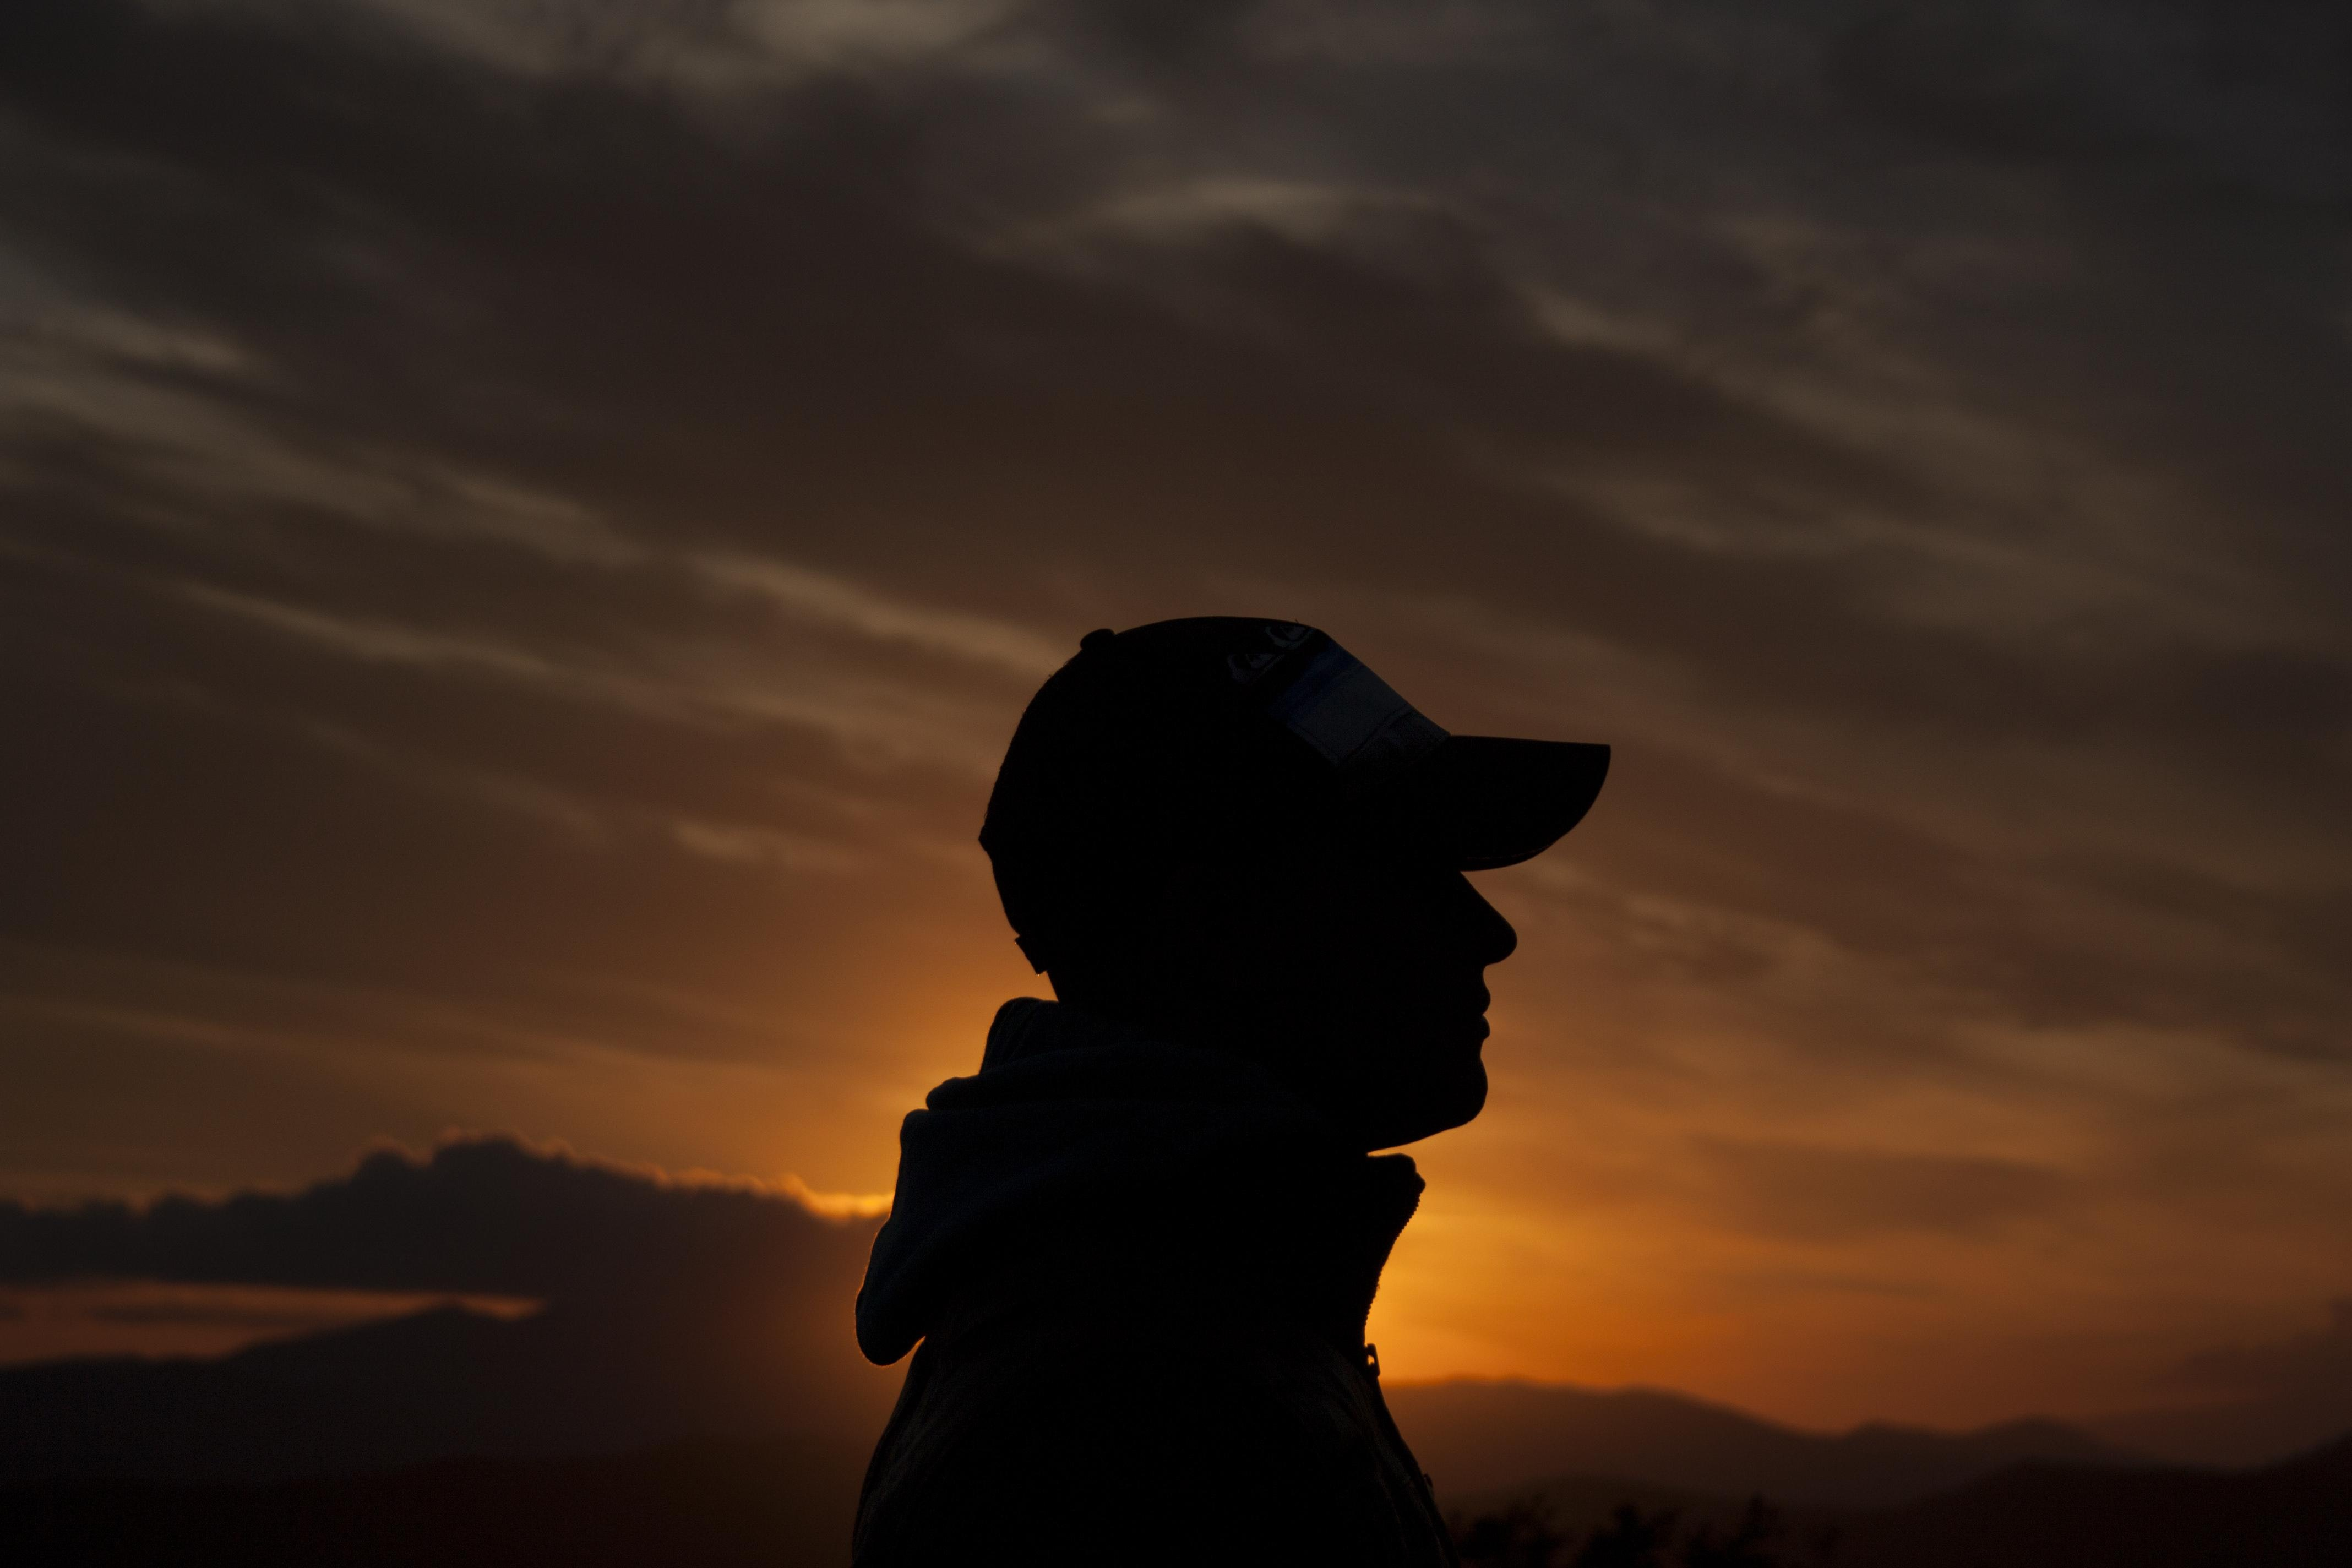 person's silhouette during golden hour